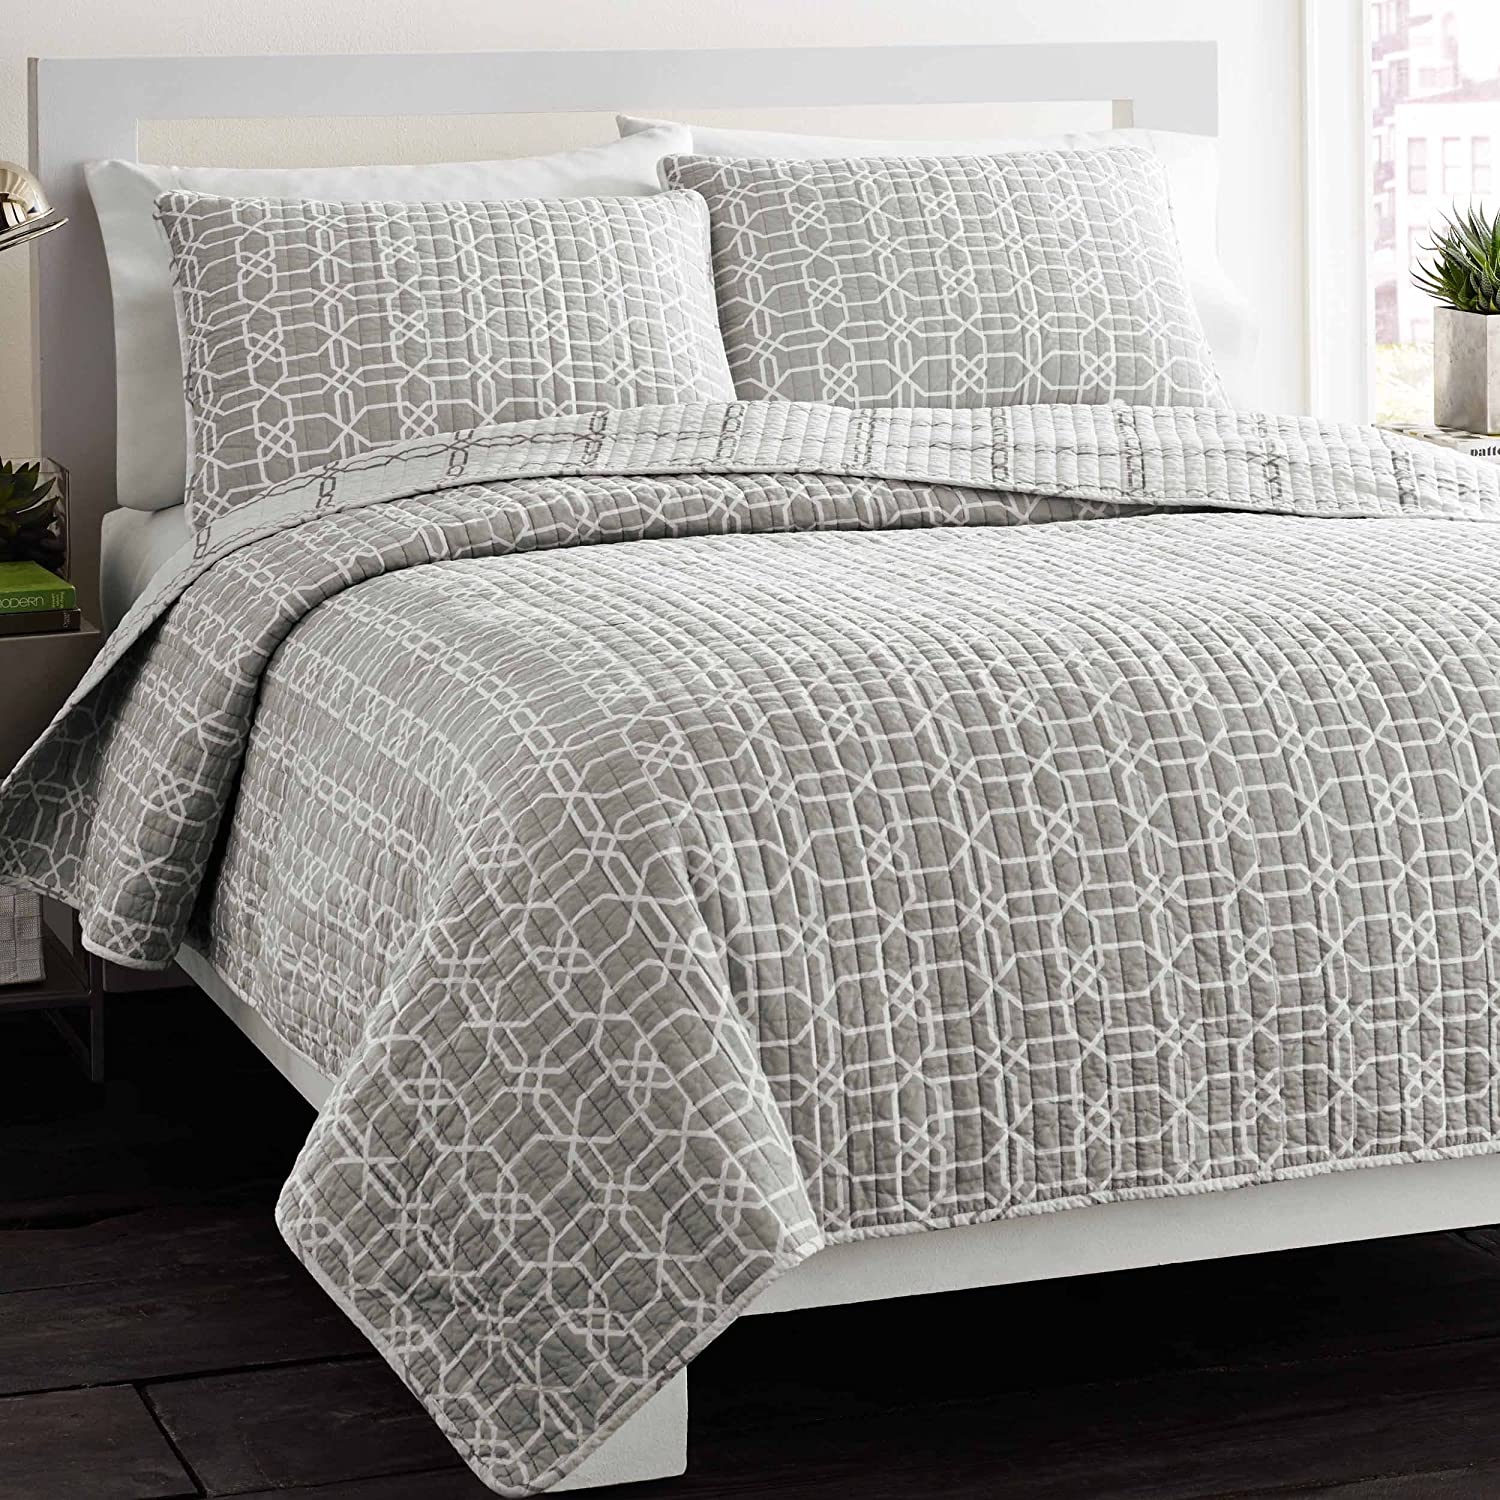 city scene bedding sets  ease bedding with style - city scene puzzle reversible cotton quilt set fullqueen gray